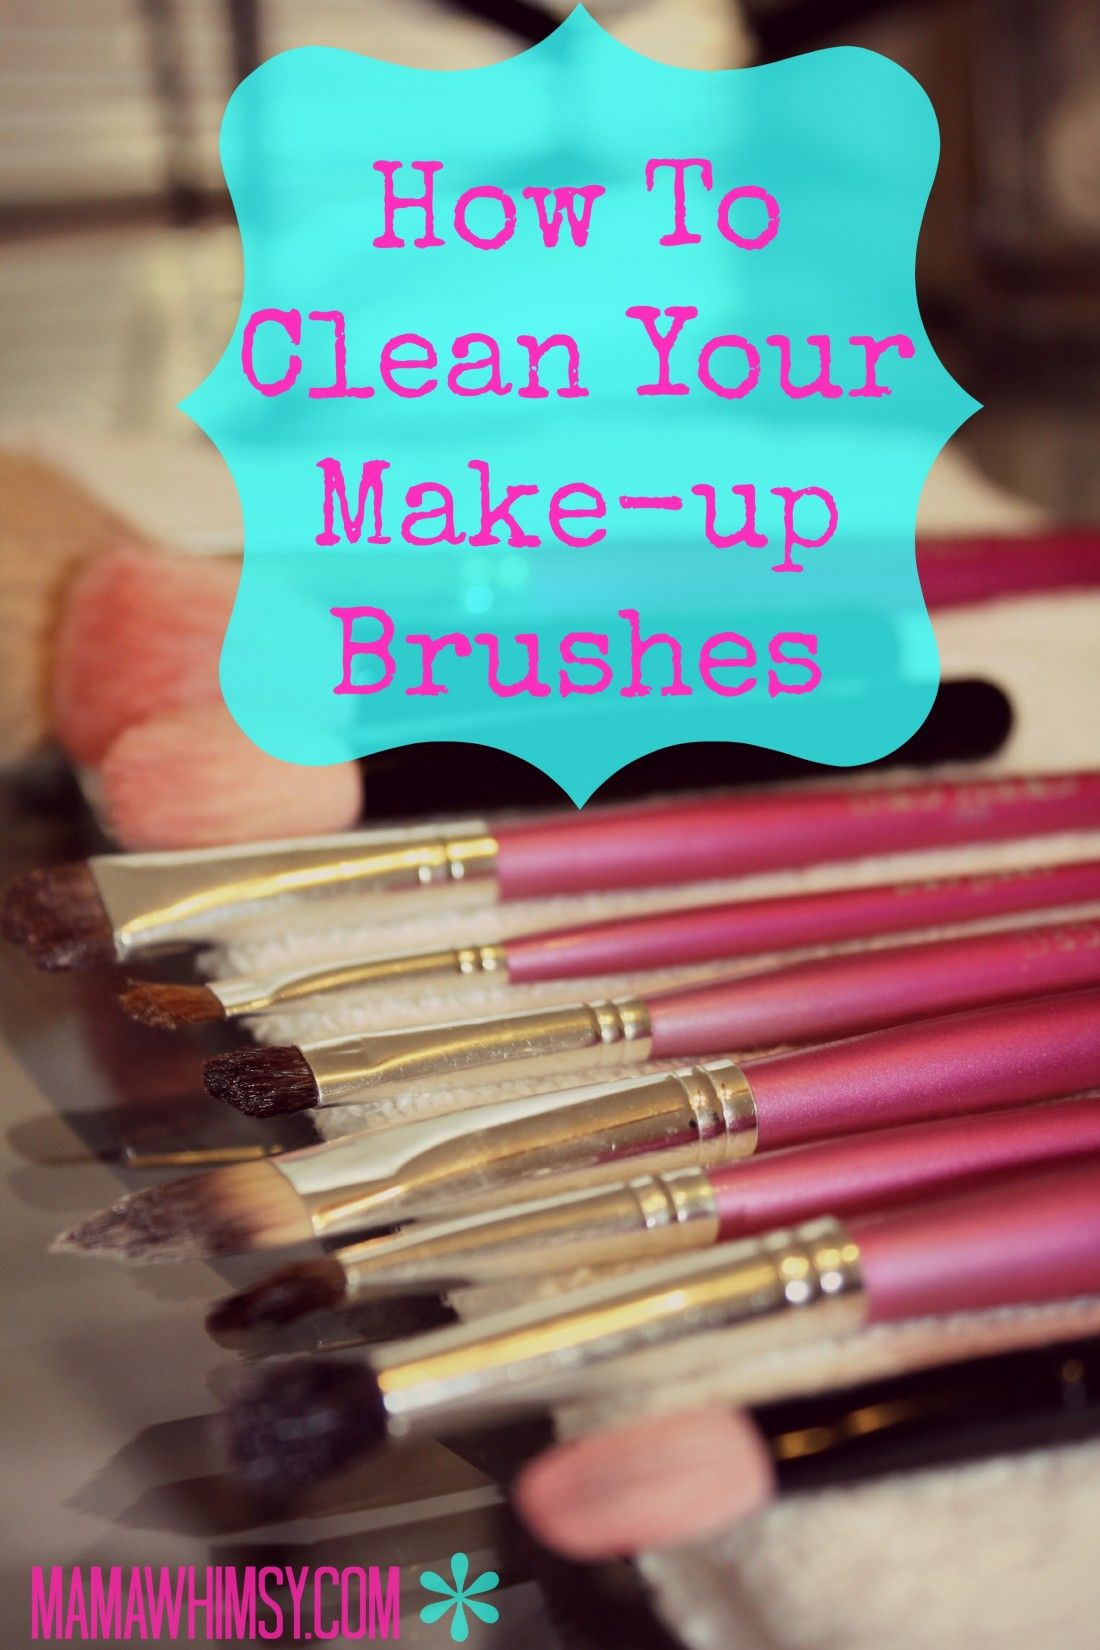 How to Clean Your Makeup Brushes! A really easy tutorial